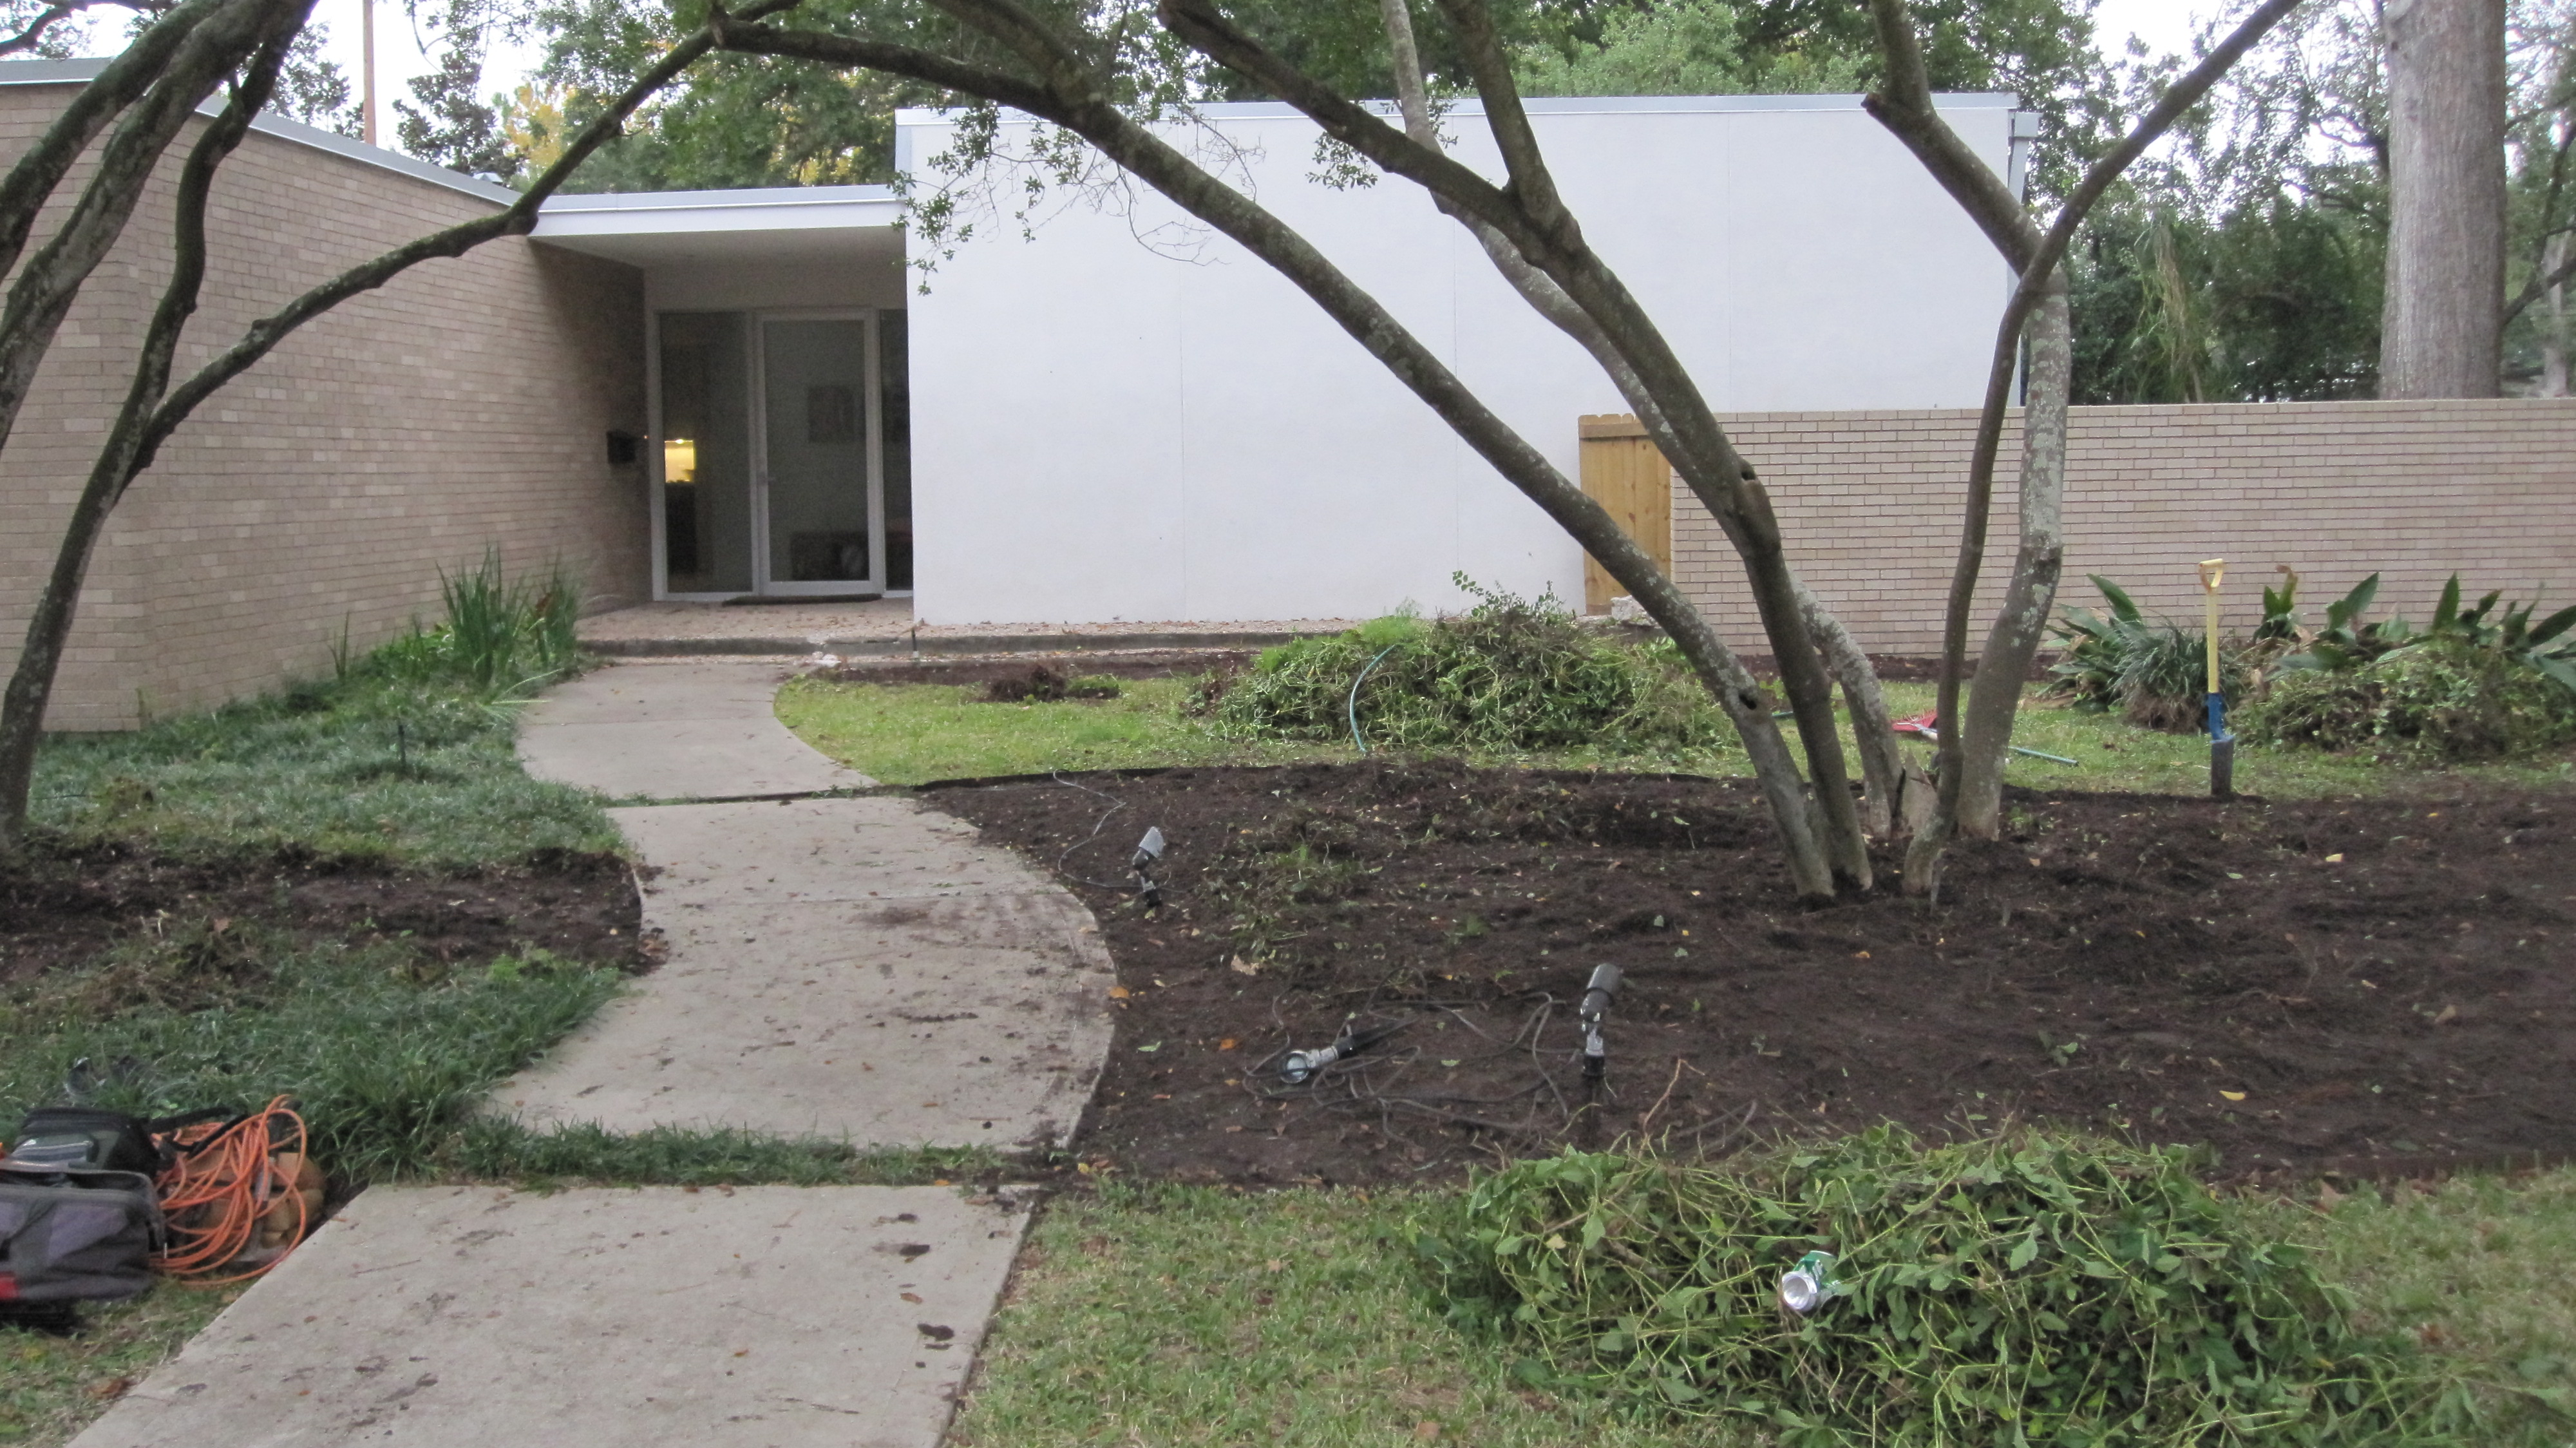 Before just finished cleaning up the beds so we can remake them. New landscaping for a newly remodeled Mid Century Modern